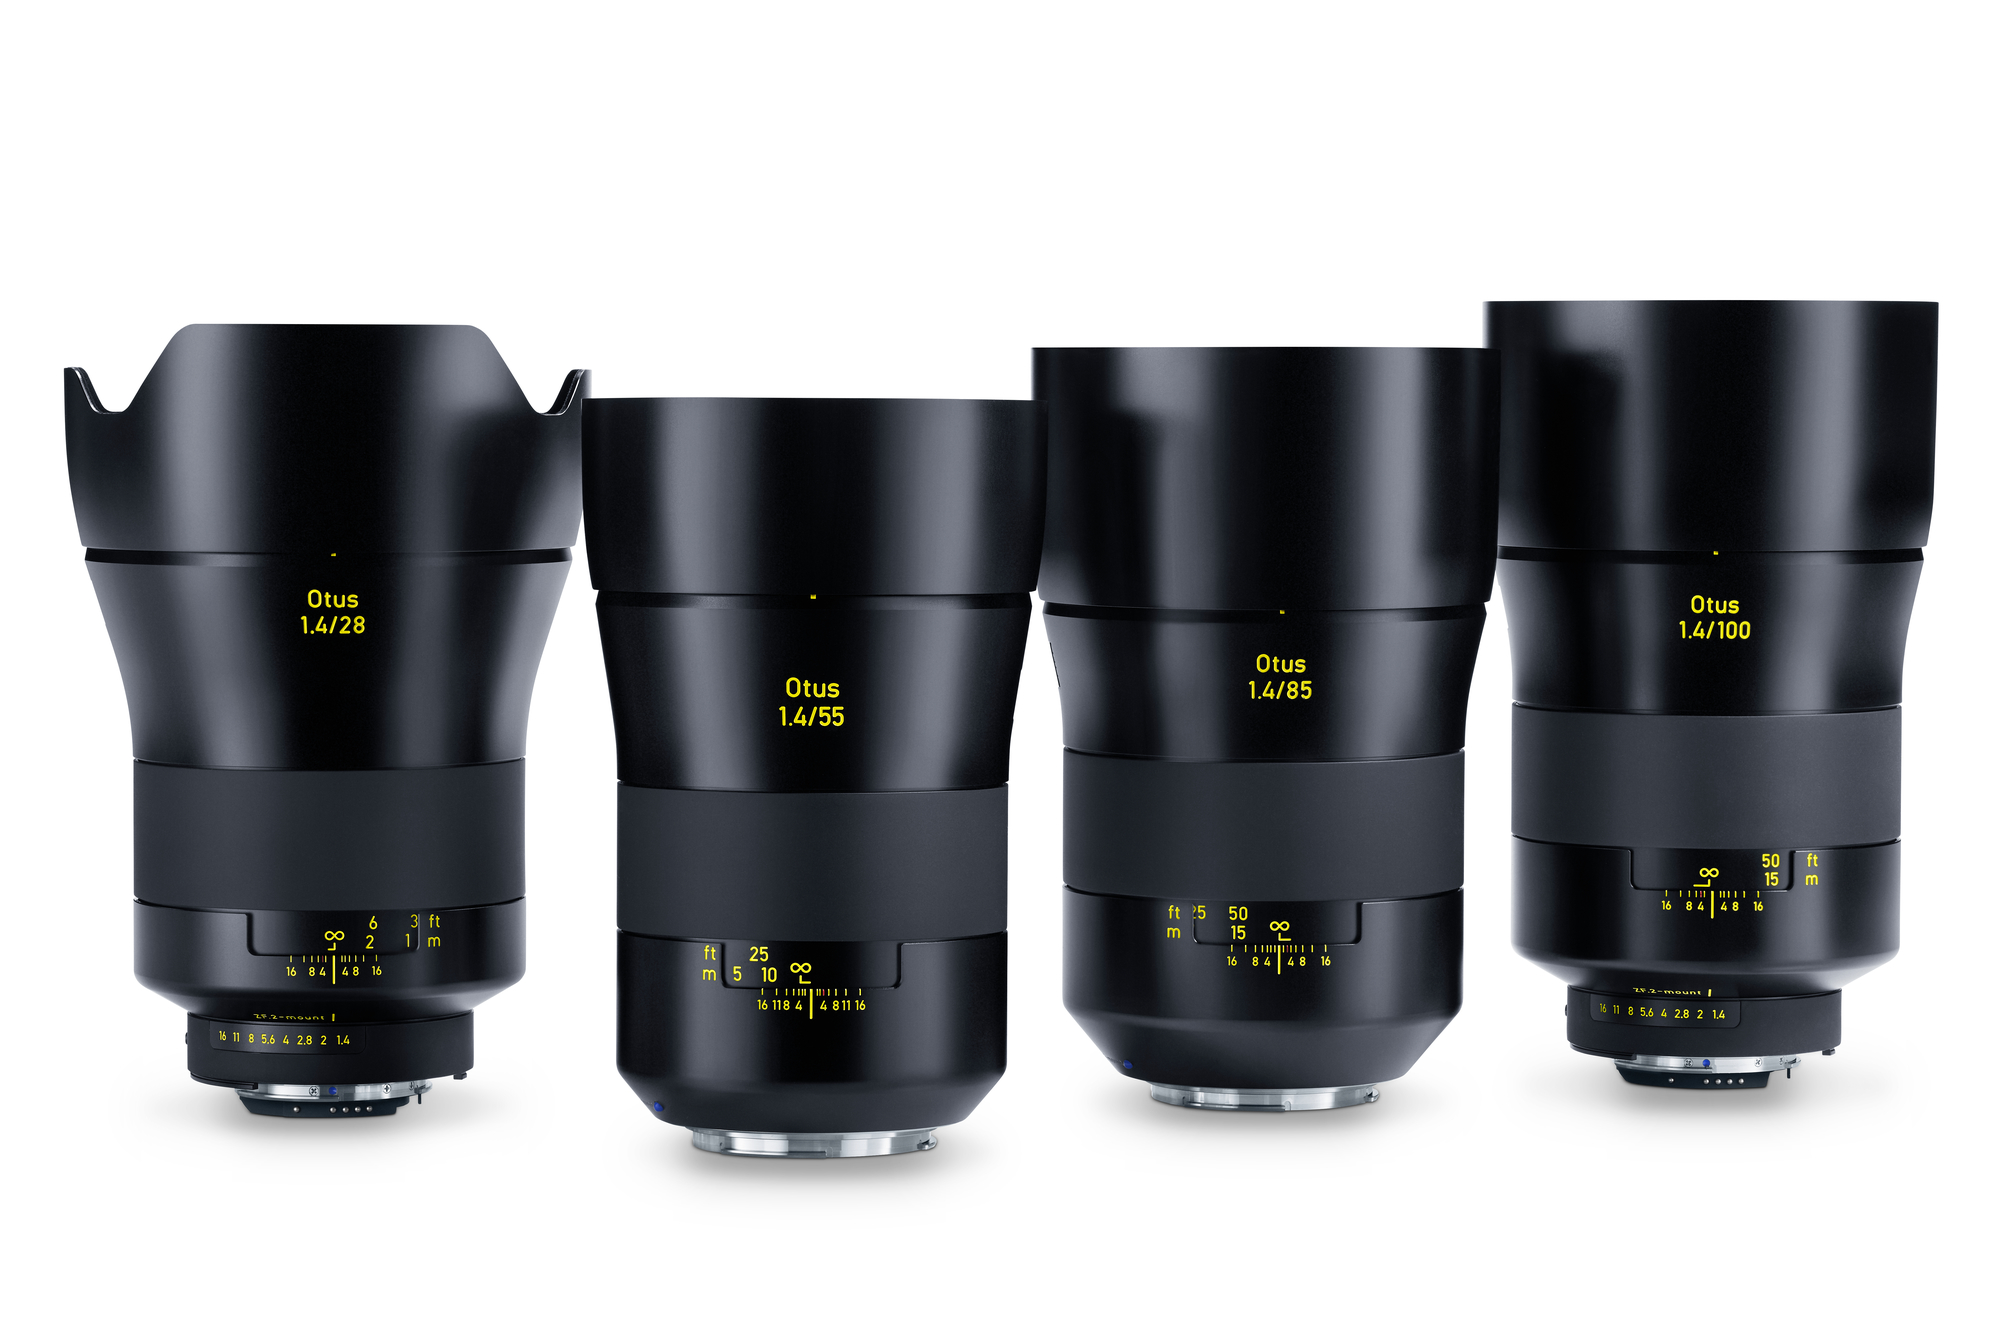 zeiss otus family of lenses